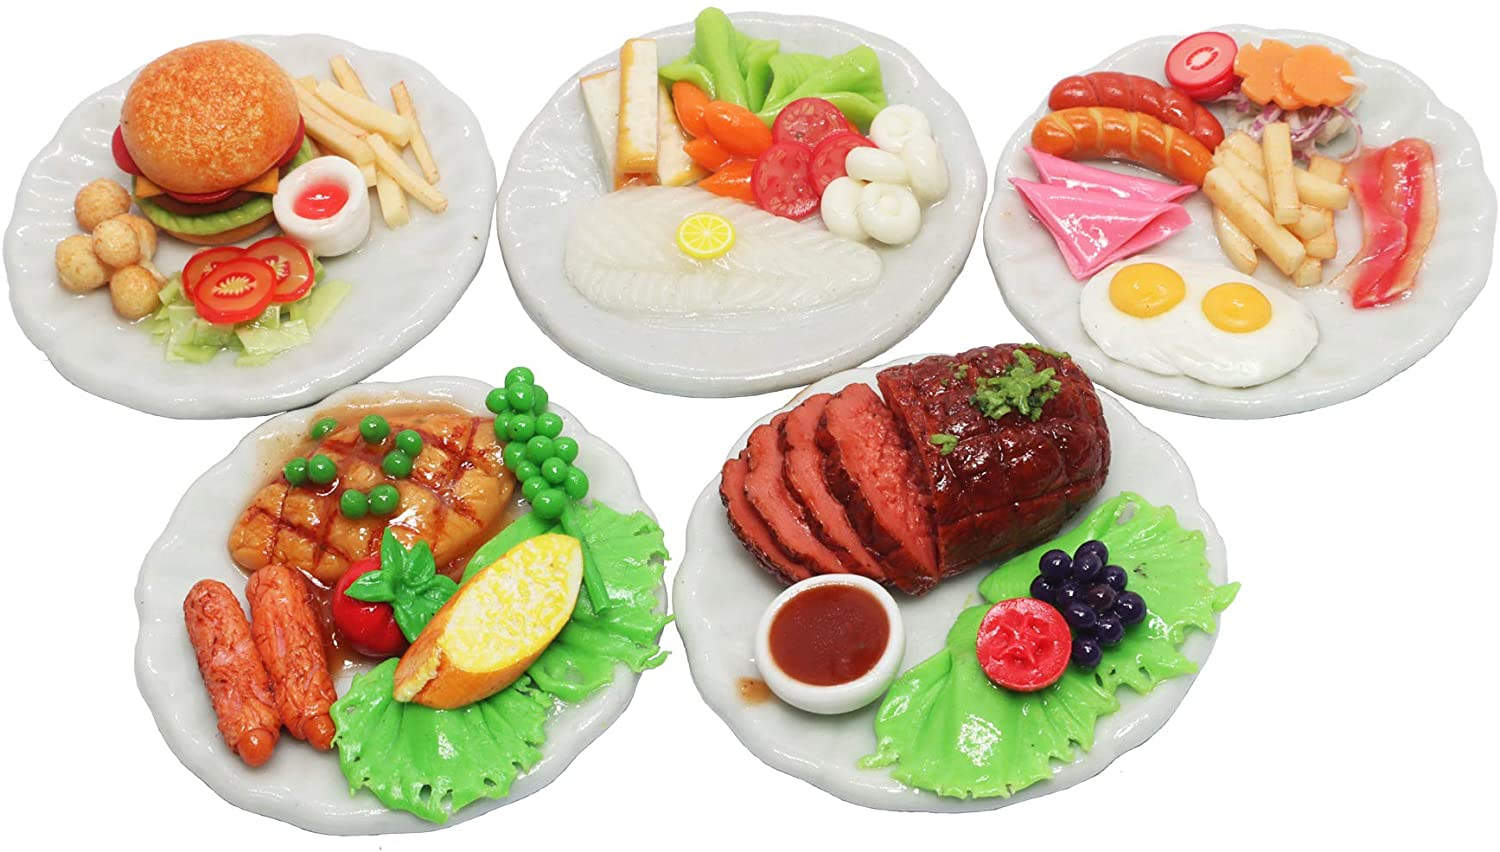 ThaiHonest Set 5 Assorted Dollhouse Miniature Food,Tiny Food On Ceramic Plate, Dollhouse Accessories for Collectibles